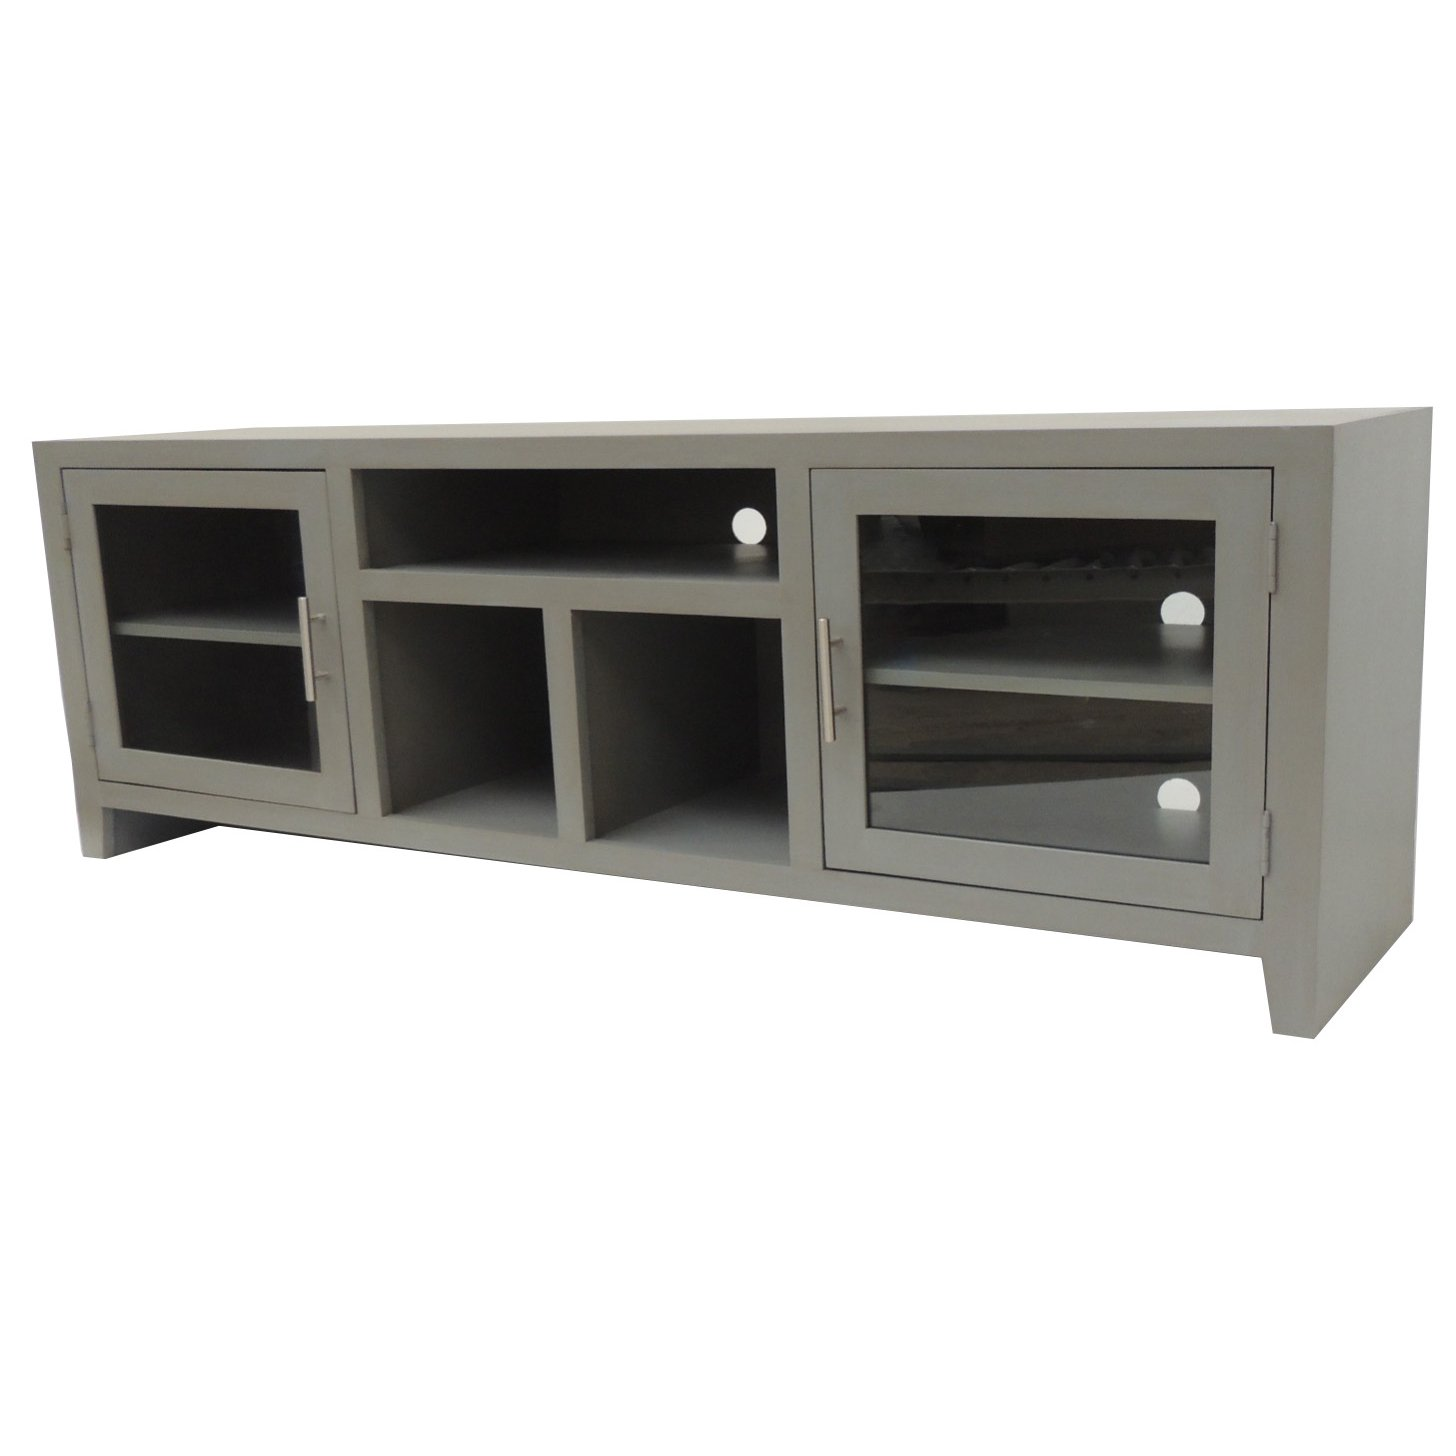 65 inch tv stand antique stores near me. Black Bedroom Furniture Sets. Home Design Ideas